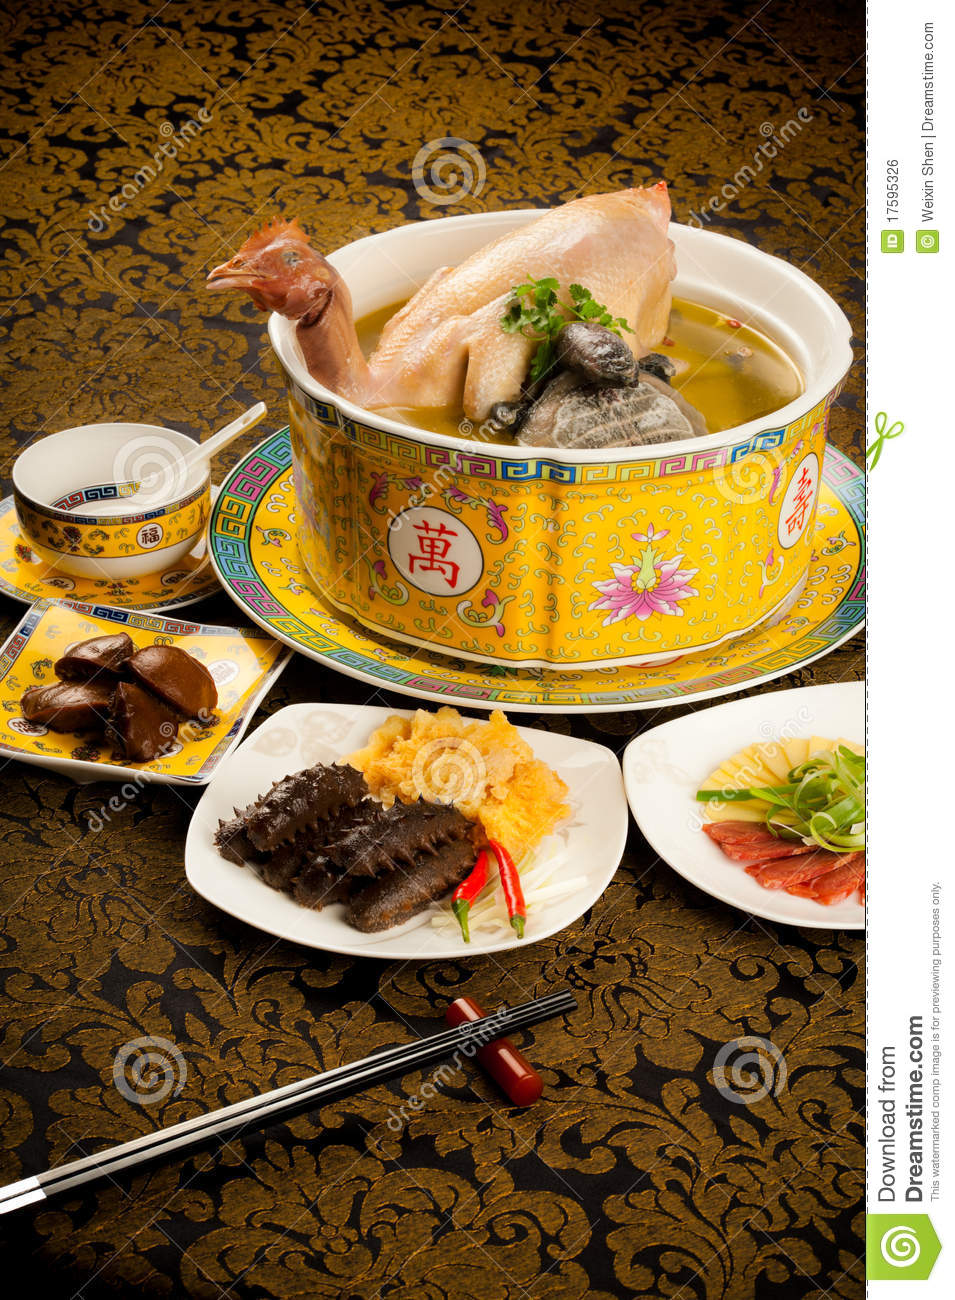 Chicken Soup In The Pot With Food Stuff Royalty Free Stock ...